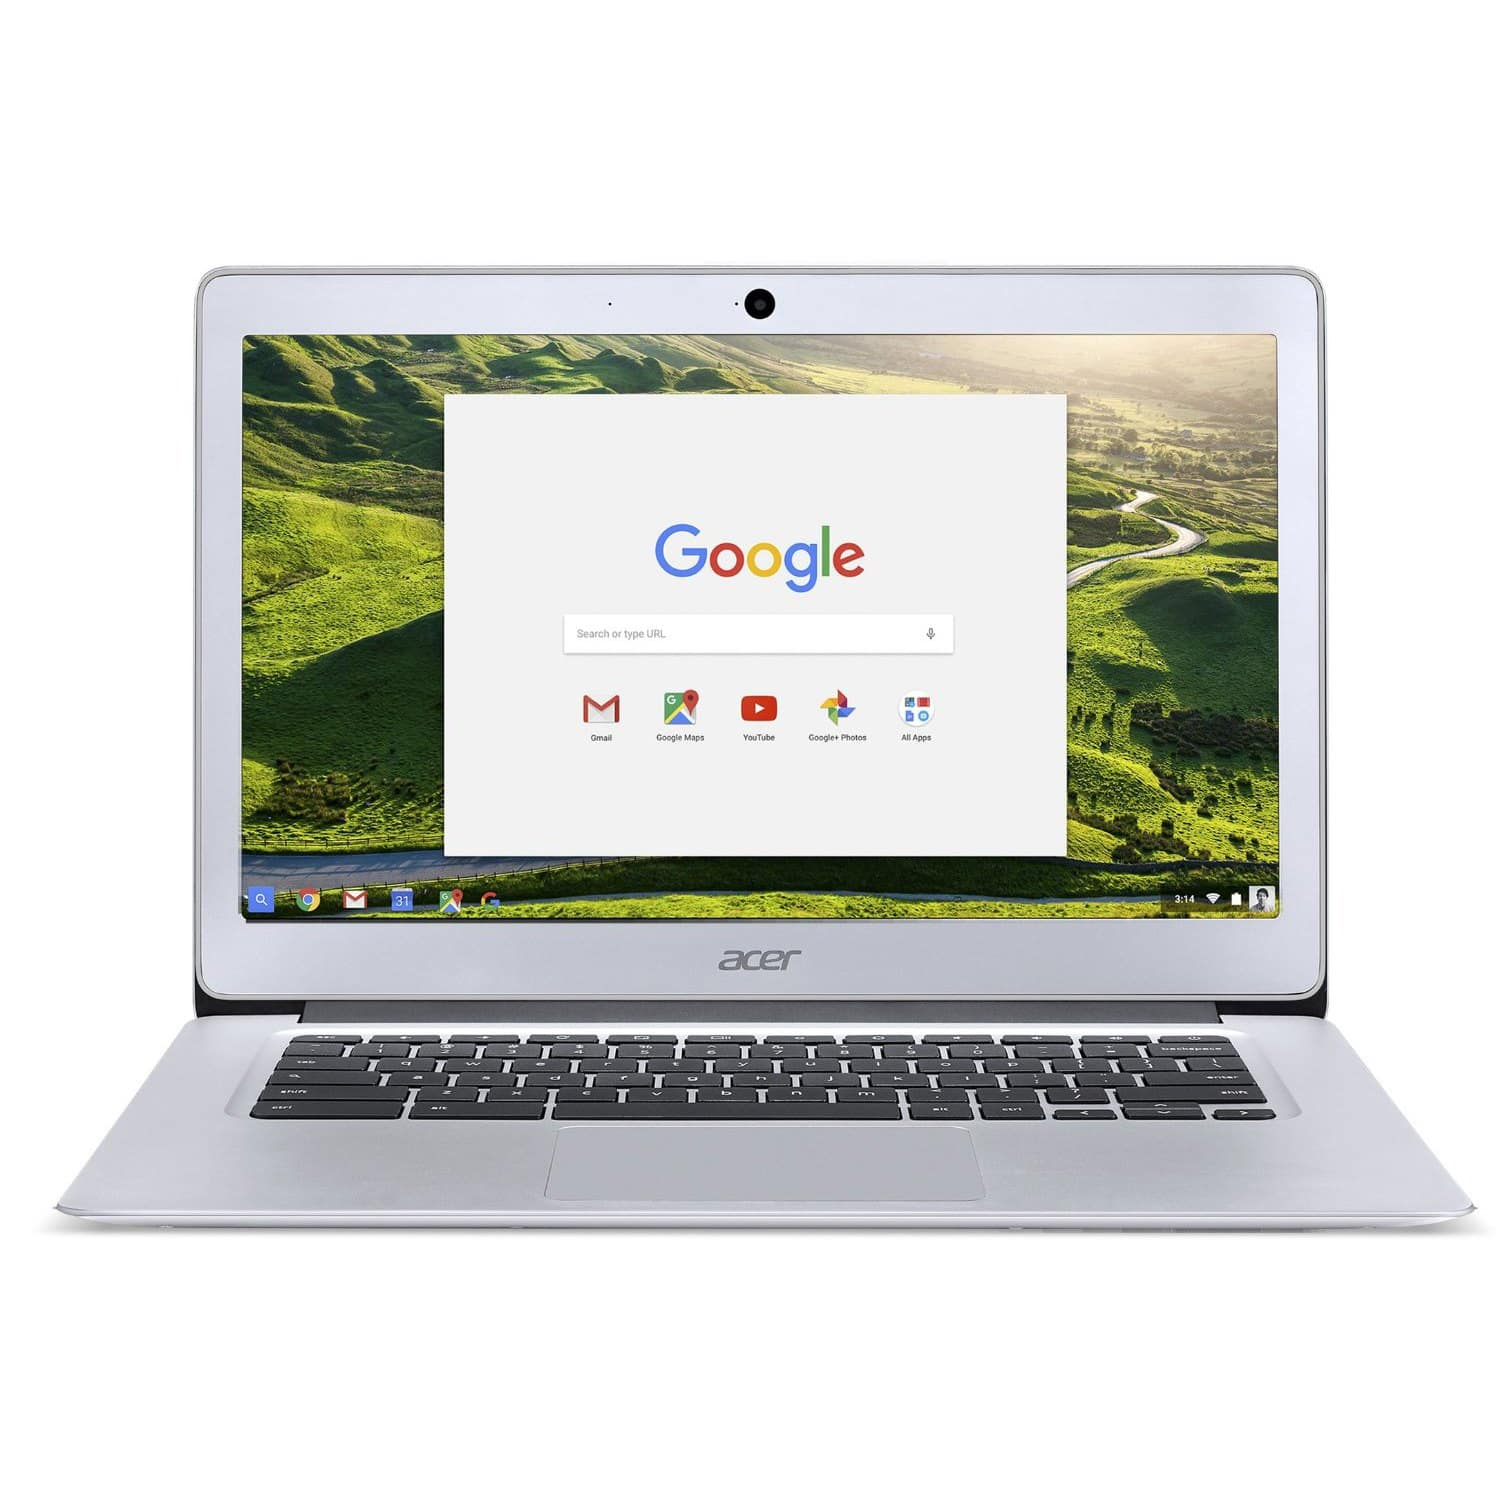 "Acer Chromebook 14"" Full HD Intel Celeron 1.6GHz 4GB RAM 32GB CB3-431-C5FM [Certified Refurbished] for $169.99 + Free Shipping"